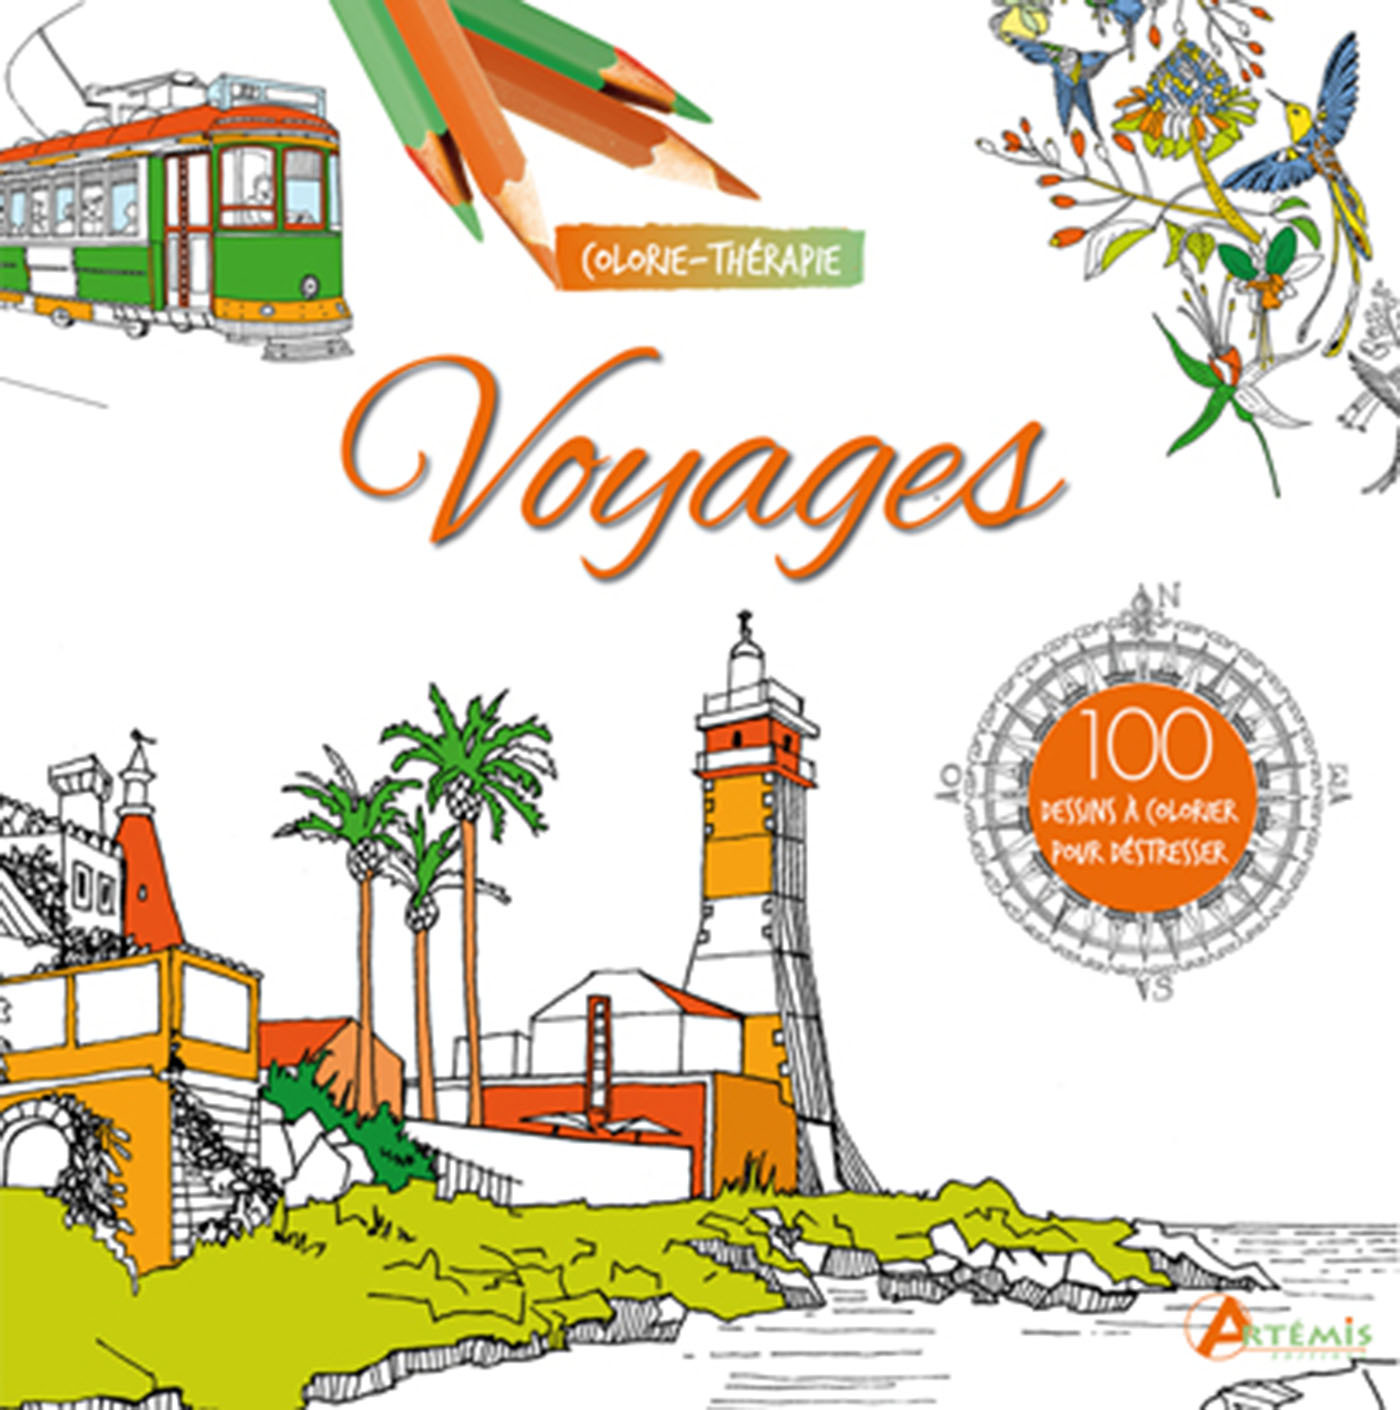 VOYAGES 100 DESSINS A COLORIER